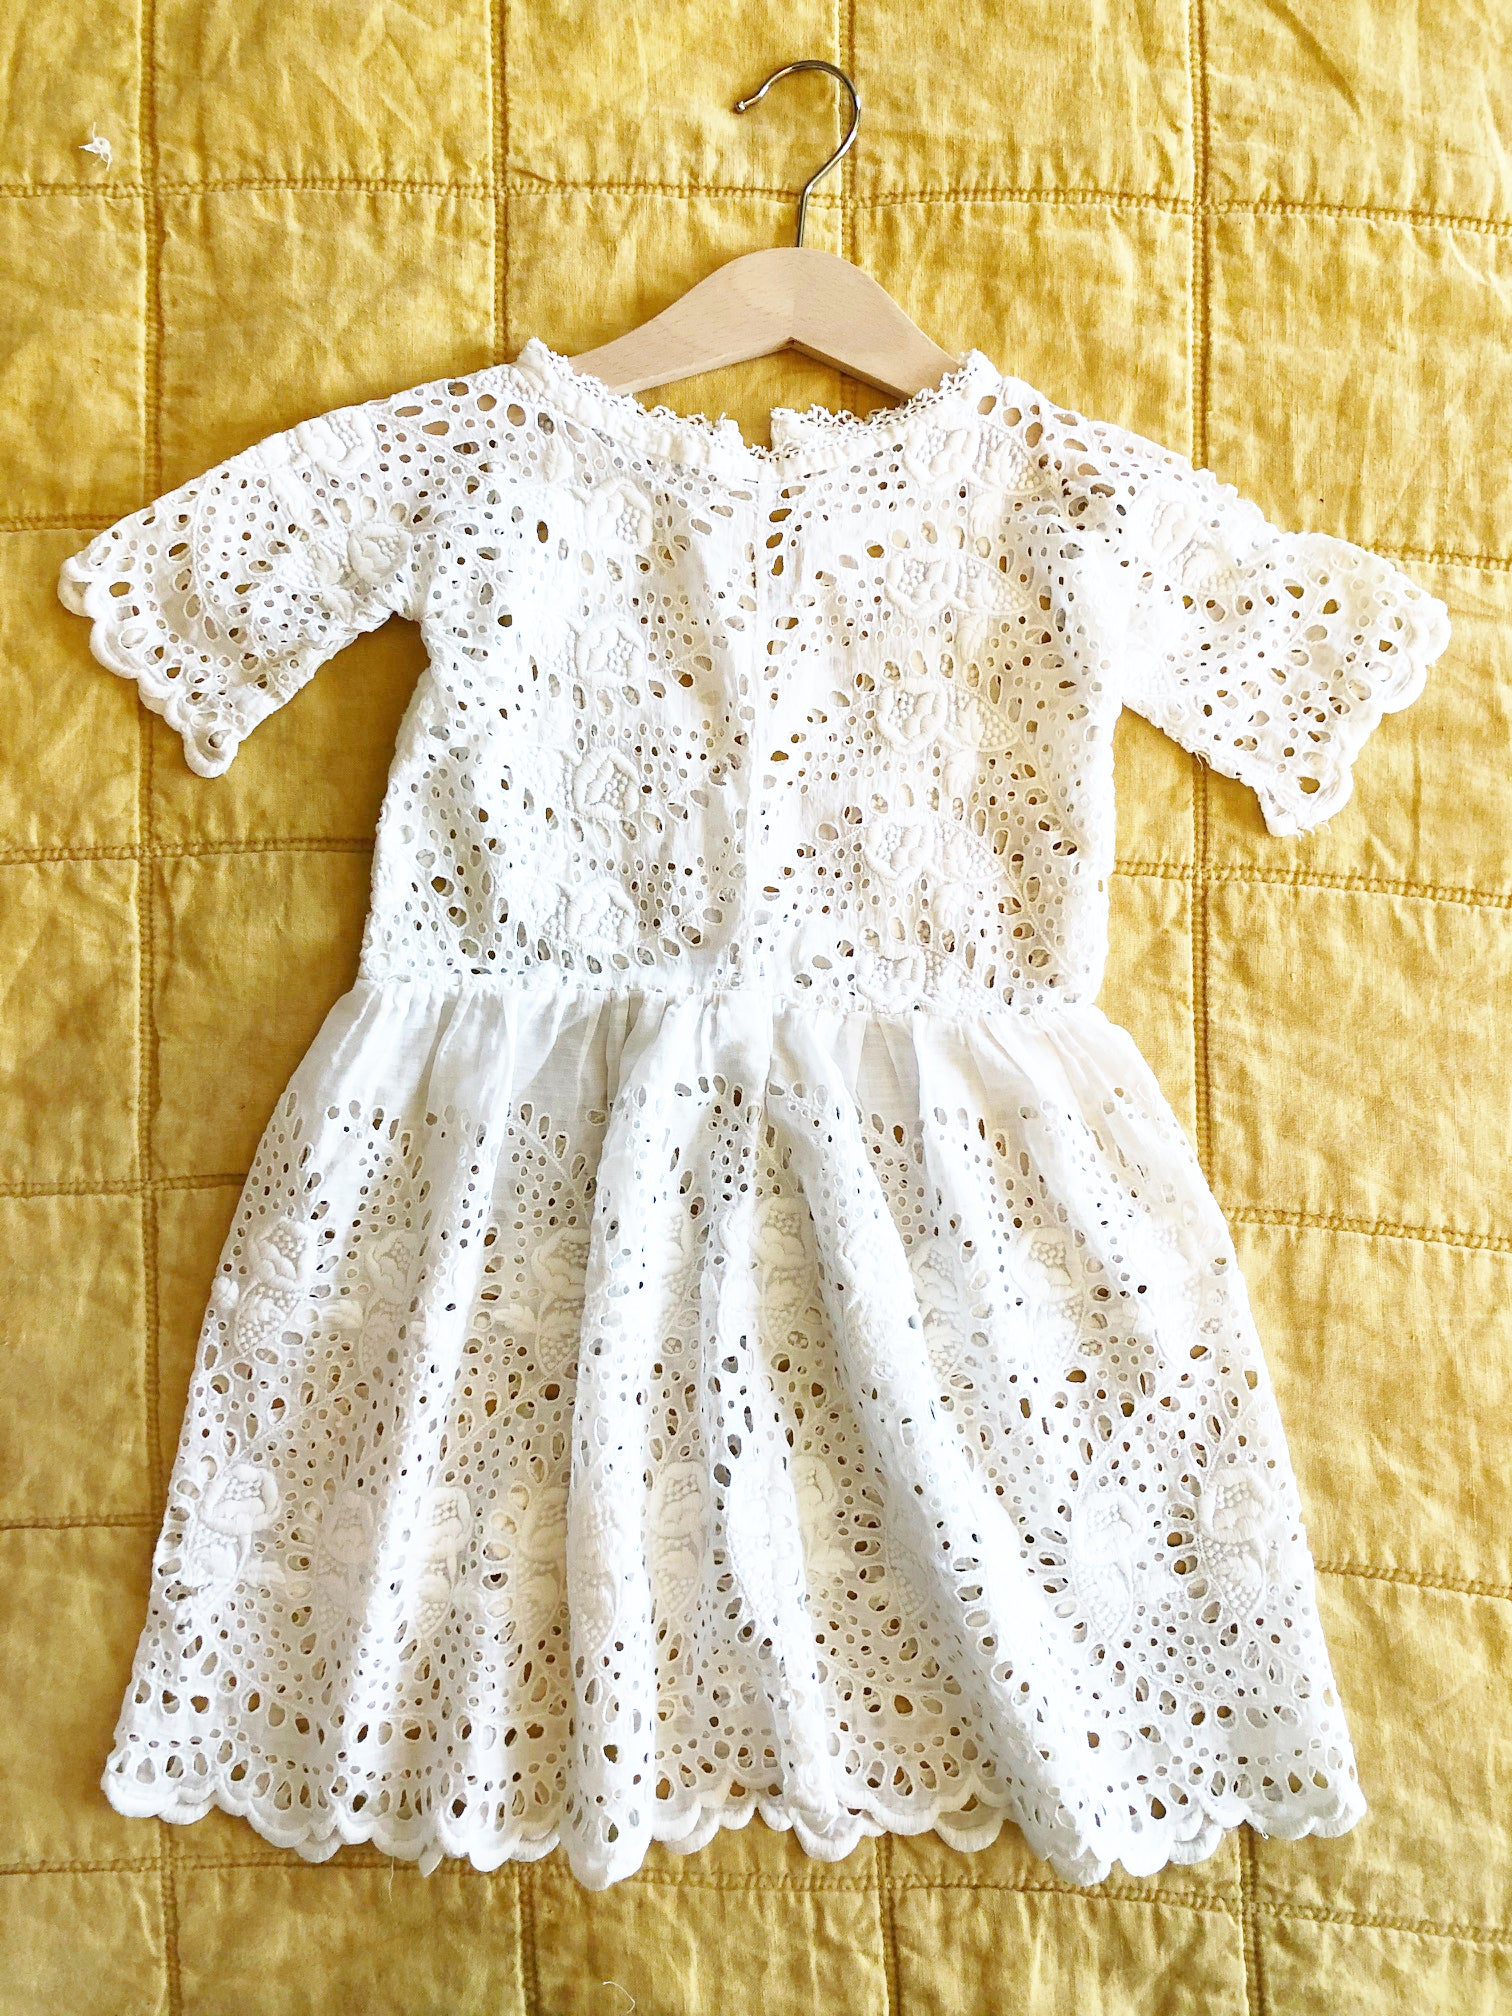 Stunning Victorian Dress with Rose Cutwork Details size 12-18 months